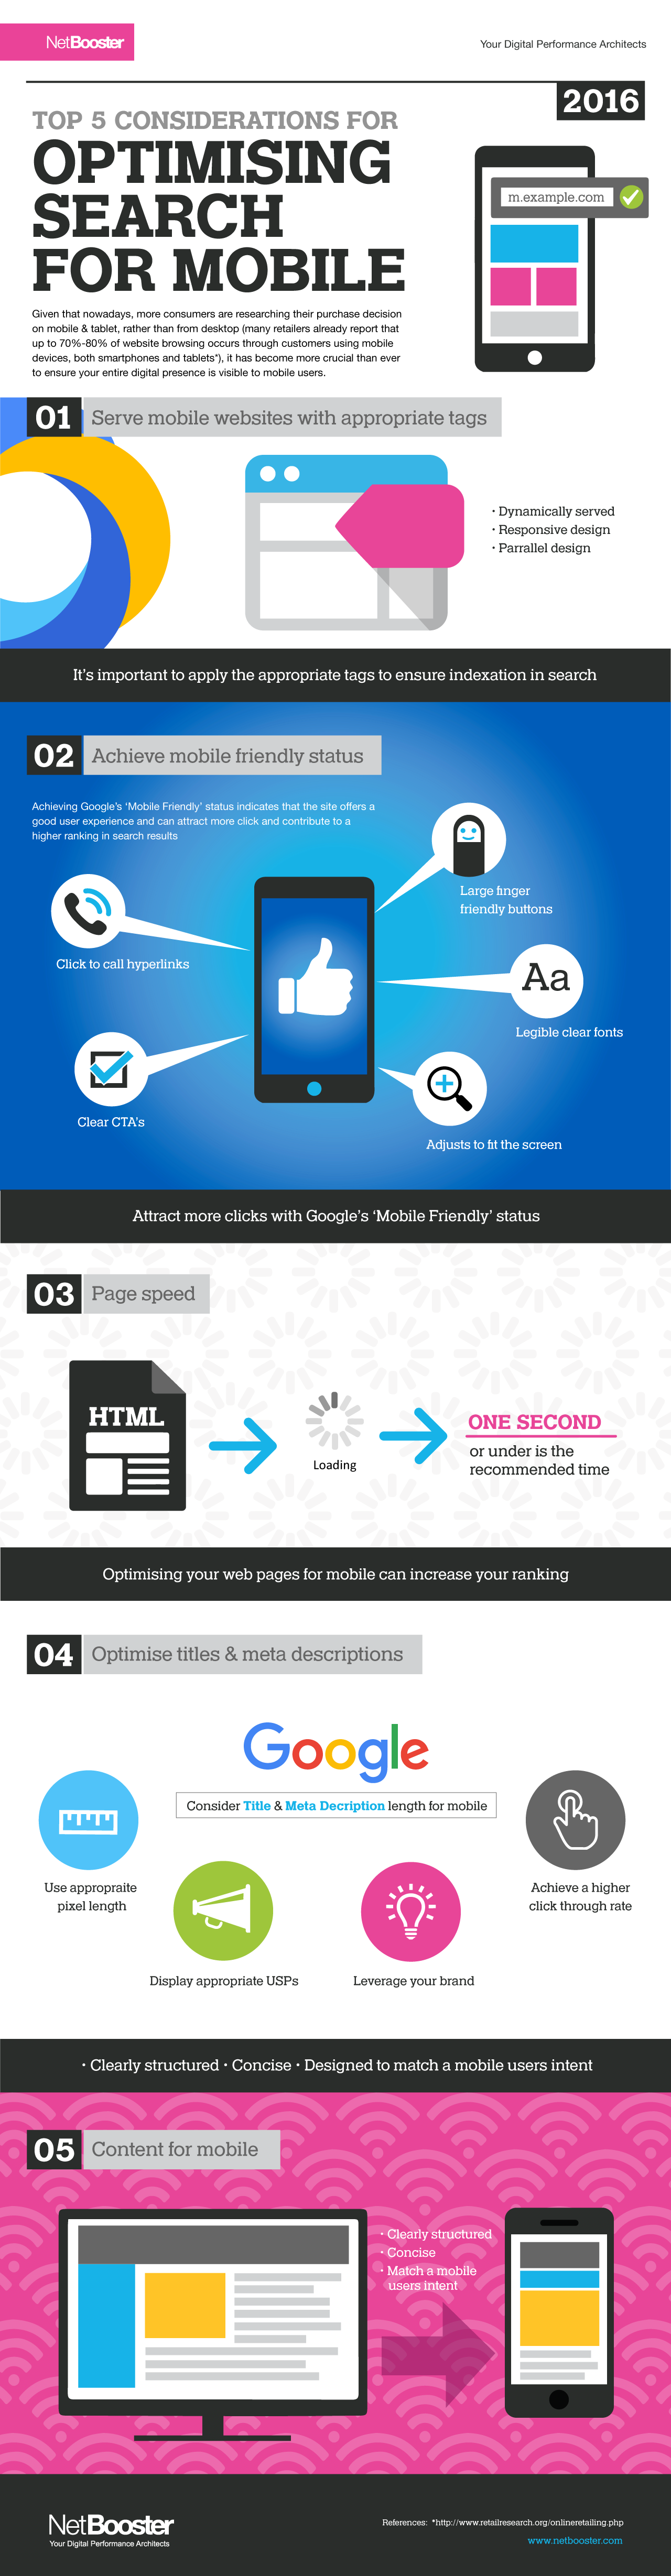 Optimising Search for Mobile Infographic